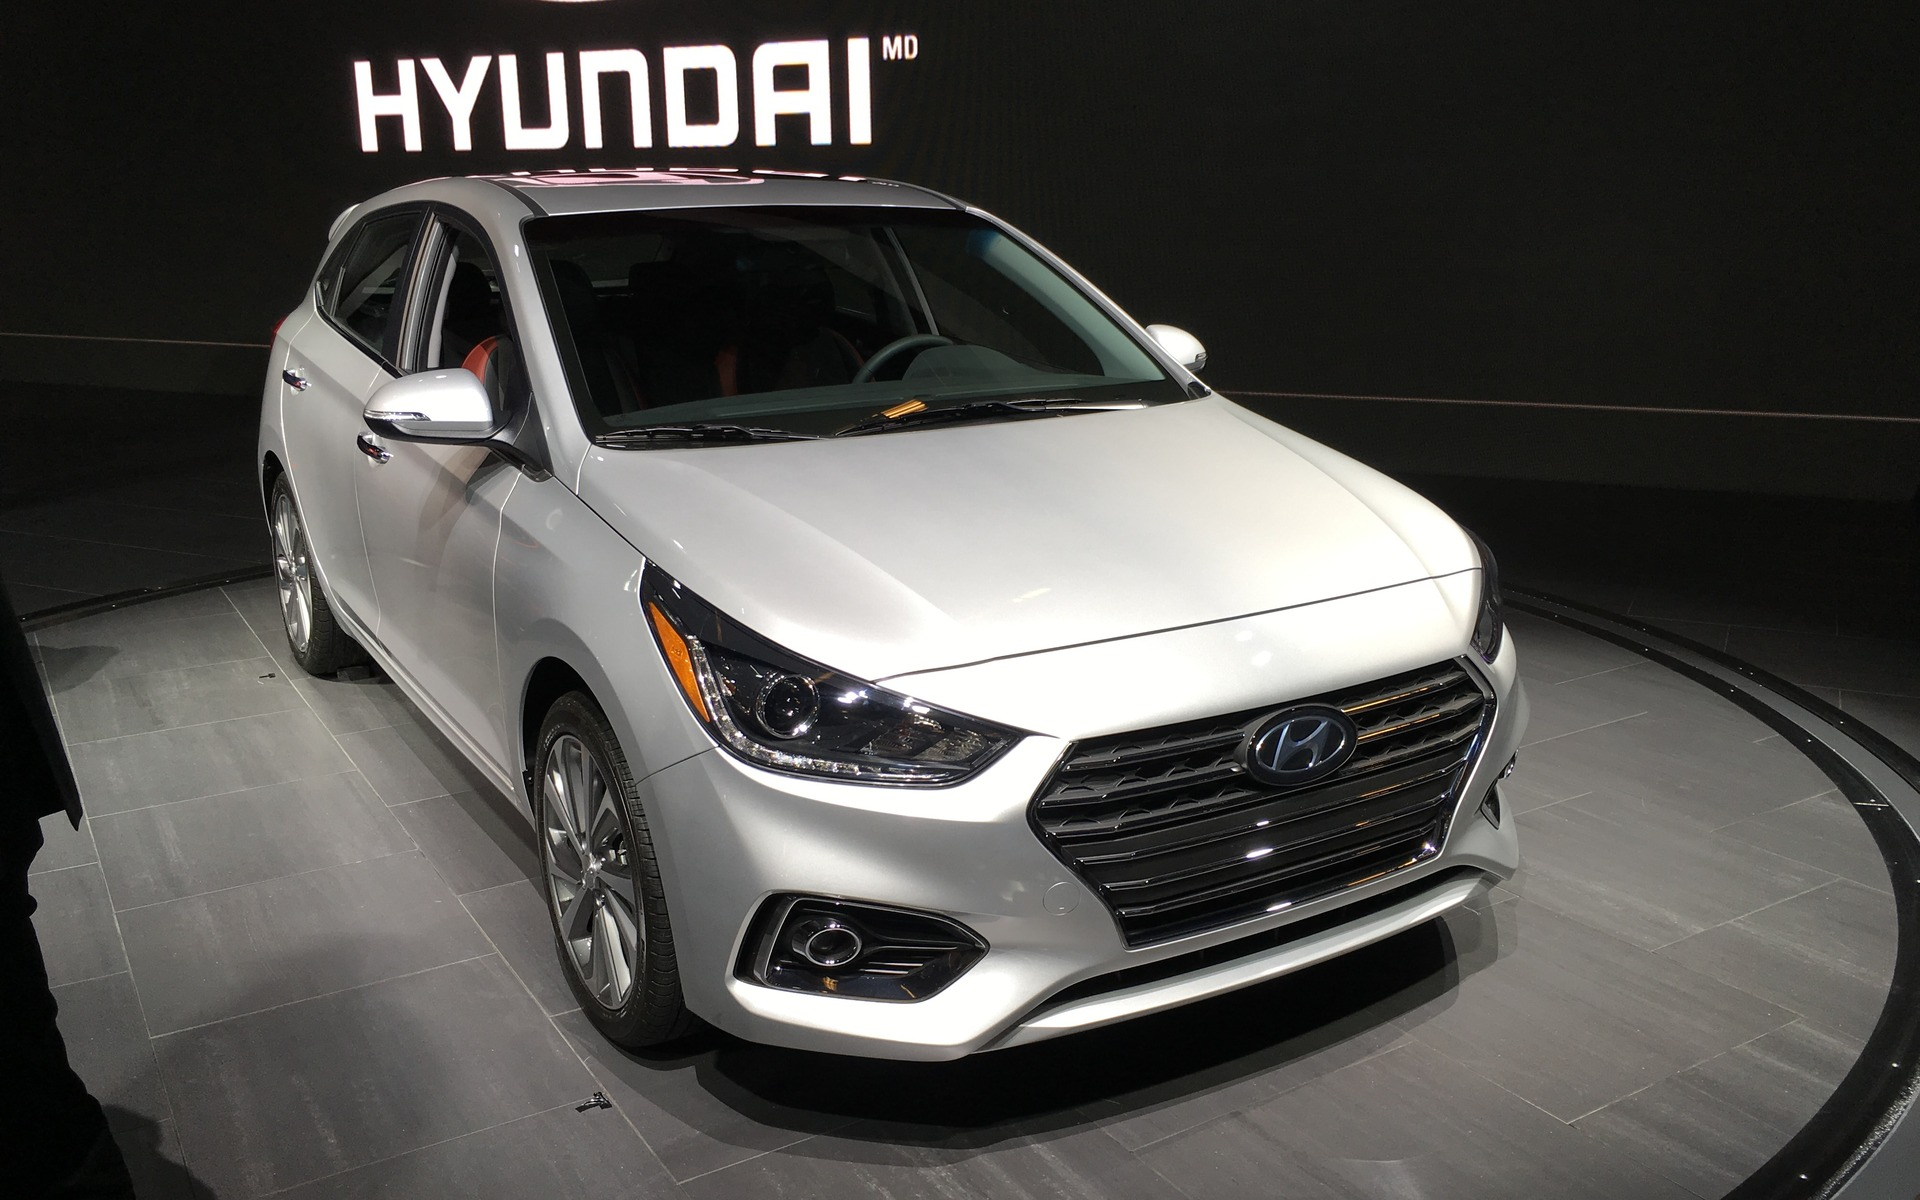 Canadian Premiere: 2018 Hyundai Accent 5 Door Is A Go For Canada